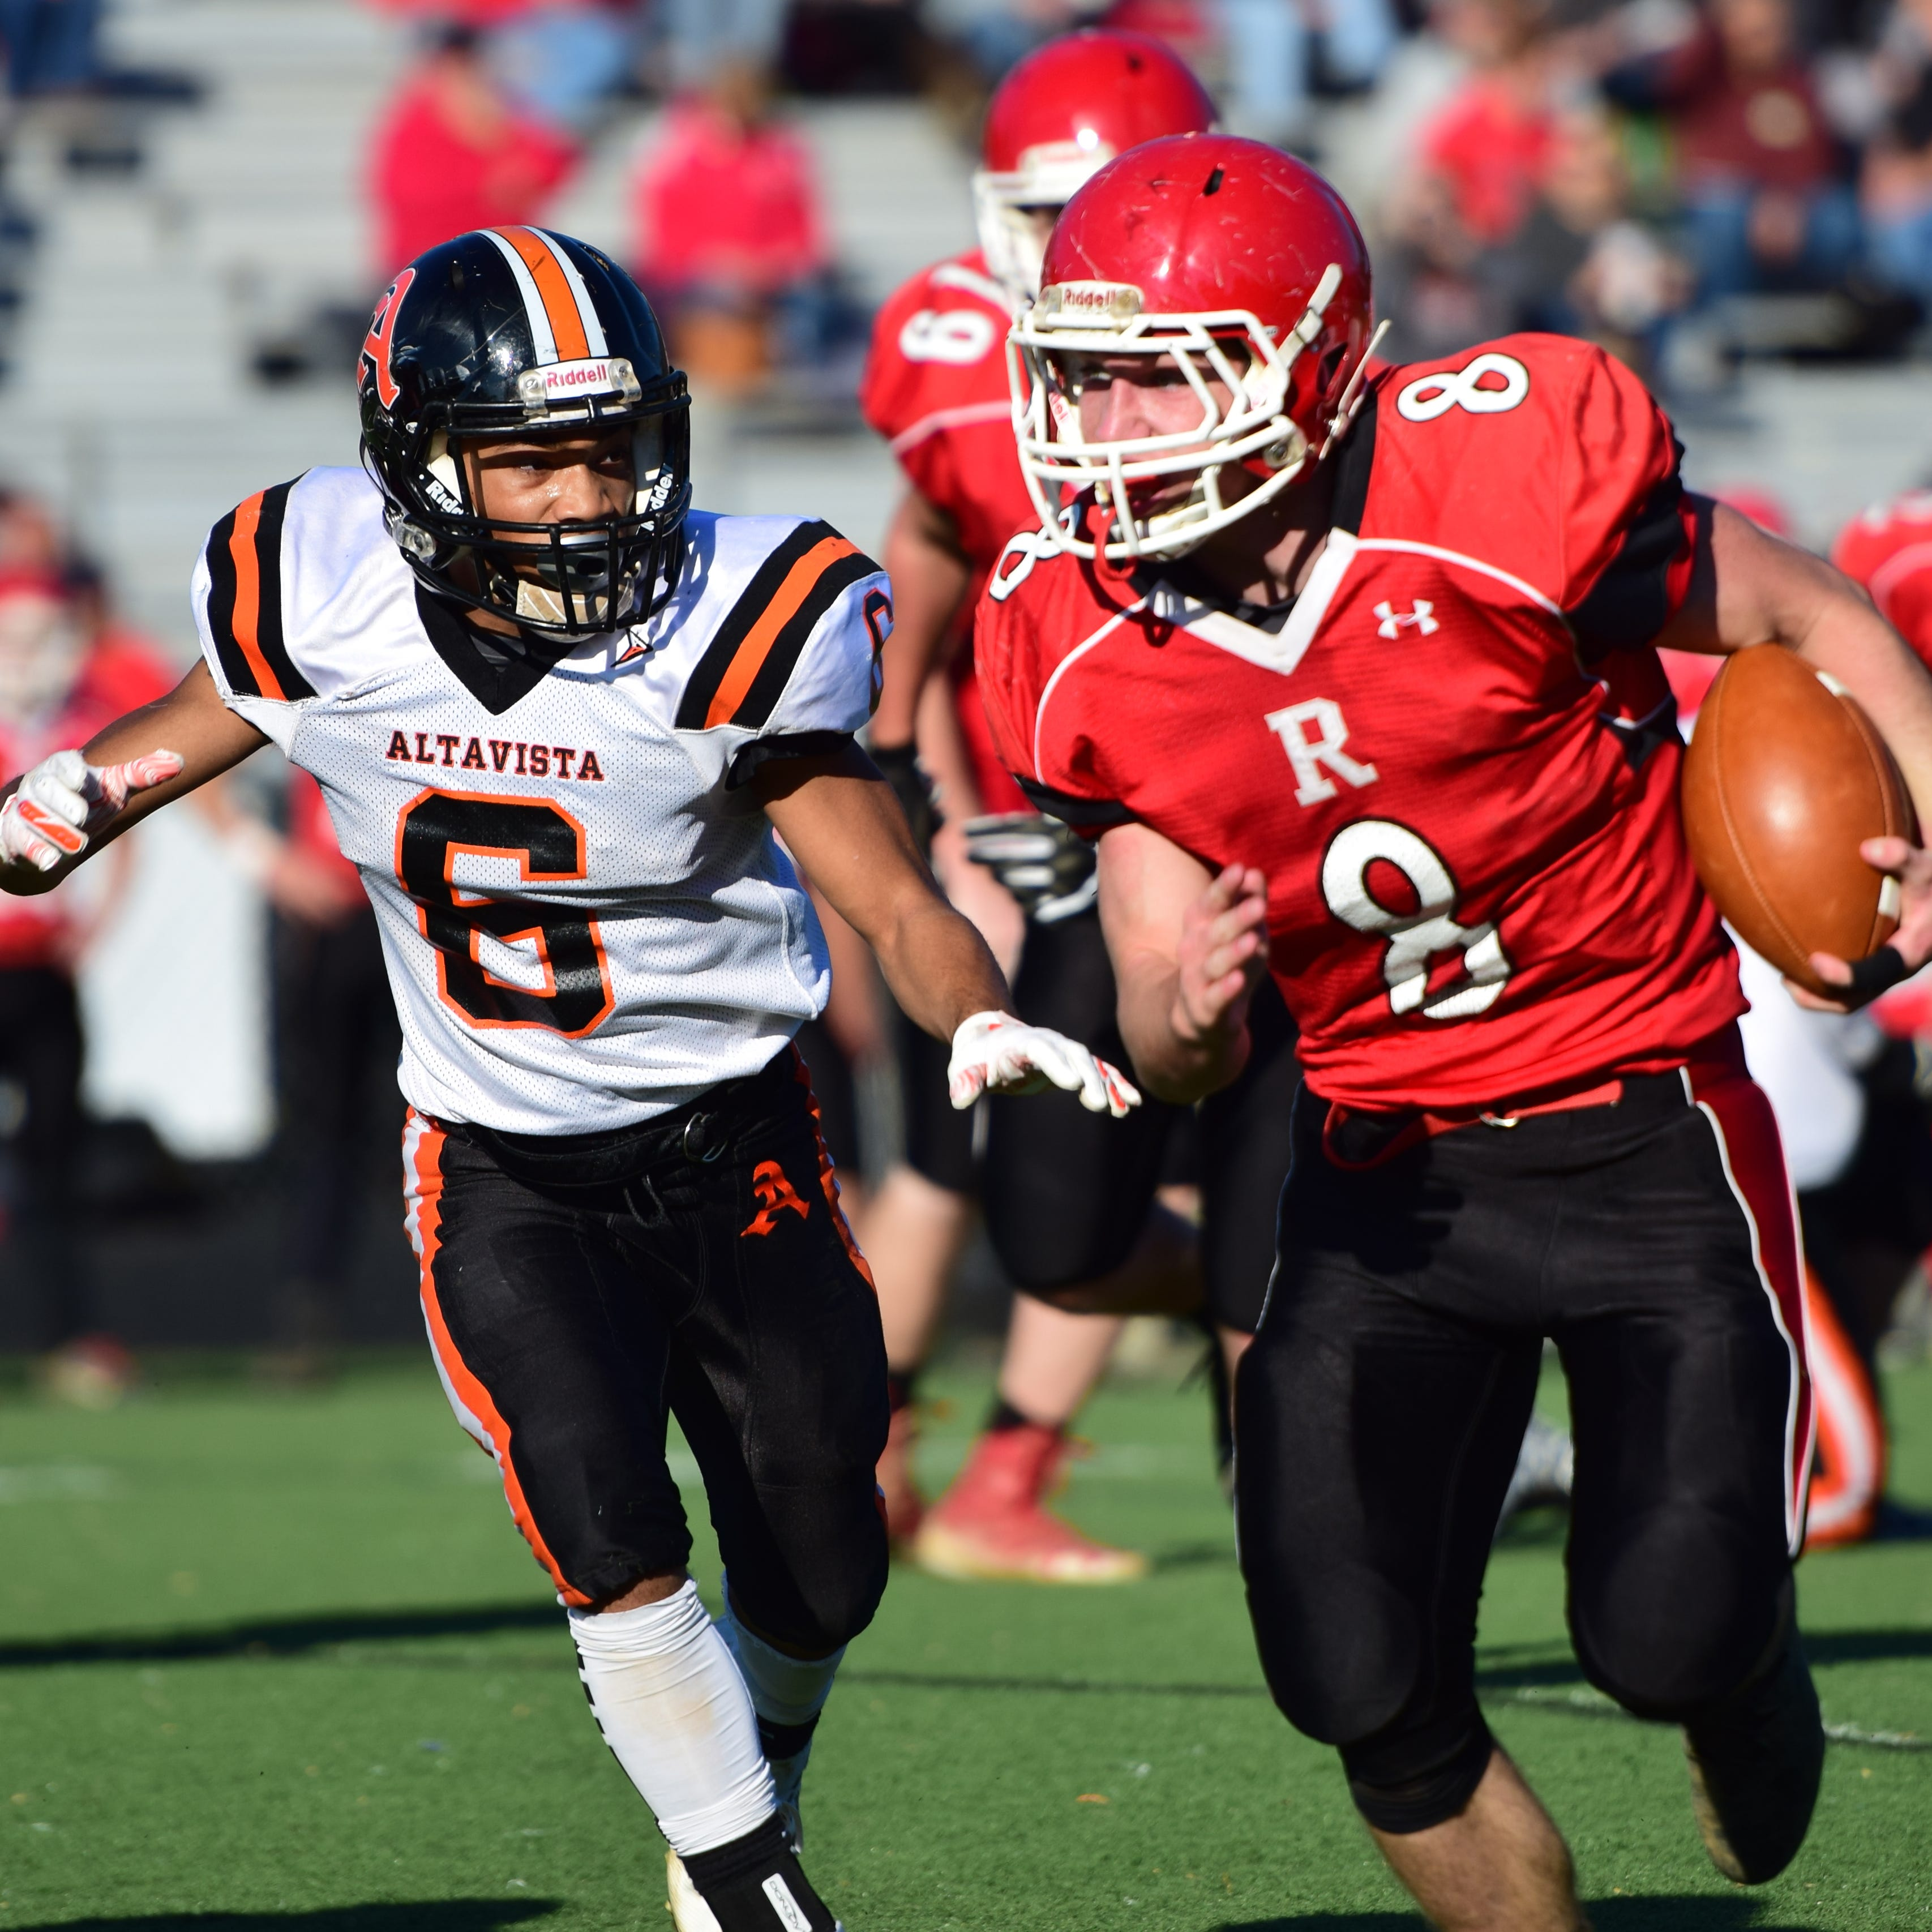 Riverheads knocks off the rust, rolls over Altavista into region final